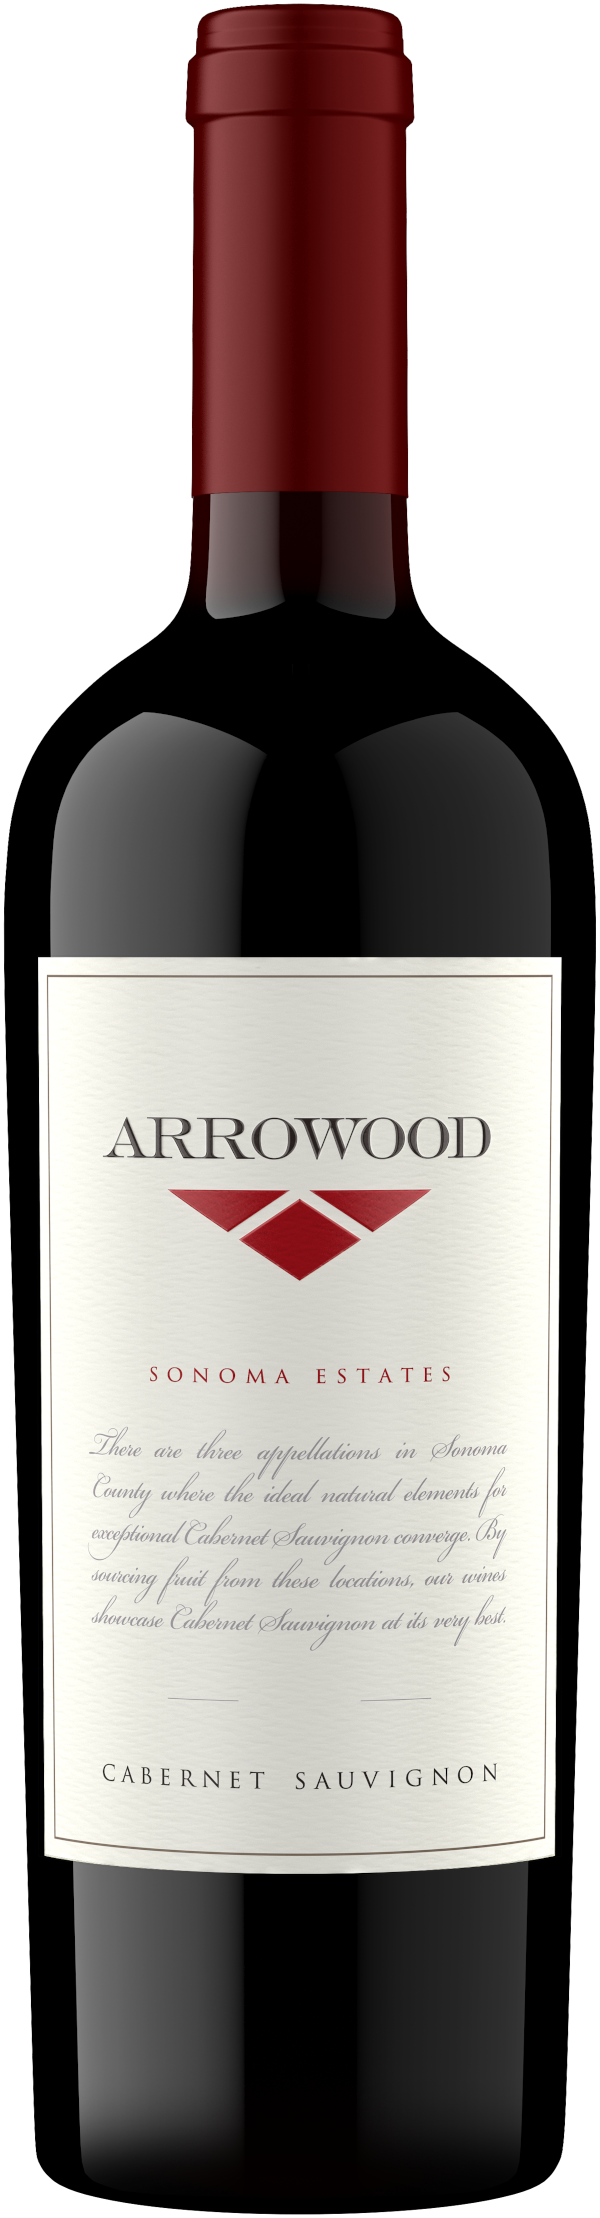 AWD_NV_SonomaEstates_CabSauv_Outshinery.png